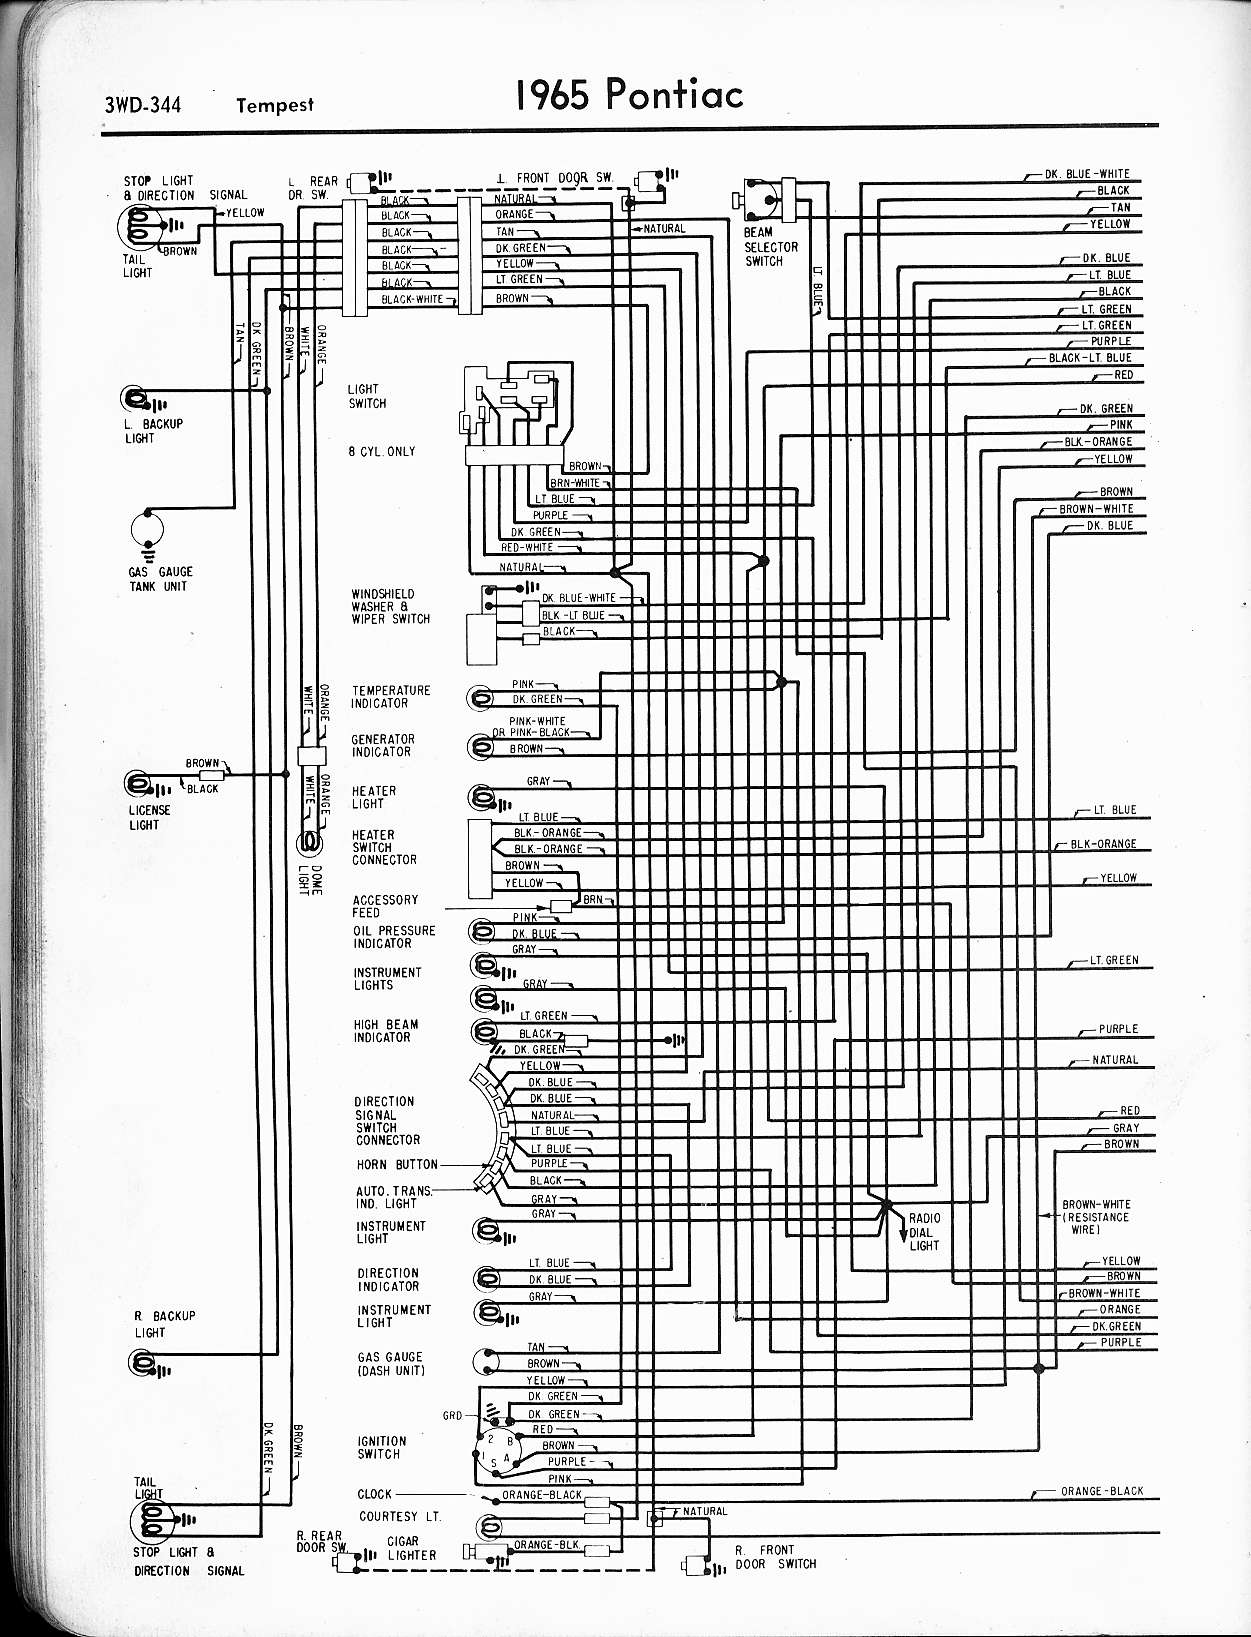 70 pontiac wiring diagram wiring diagrams 70 VW Wiring Diagram 70 pontiac wiring diagram